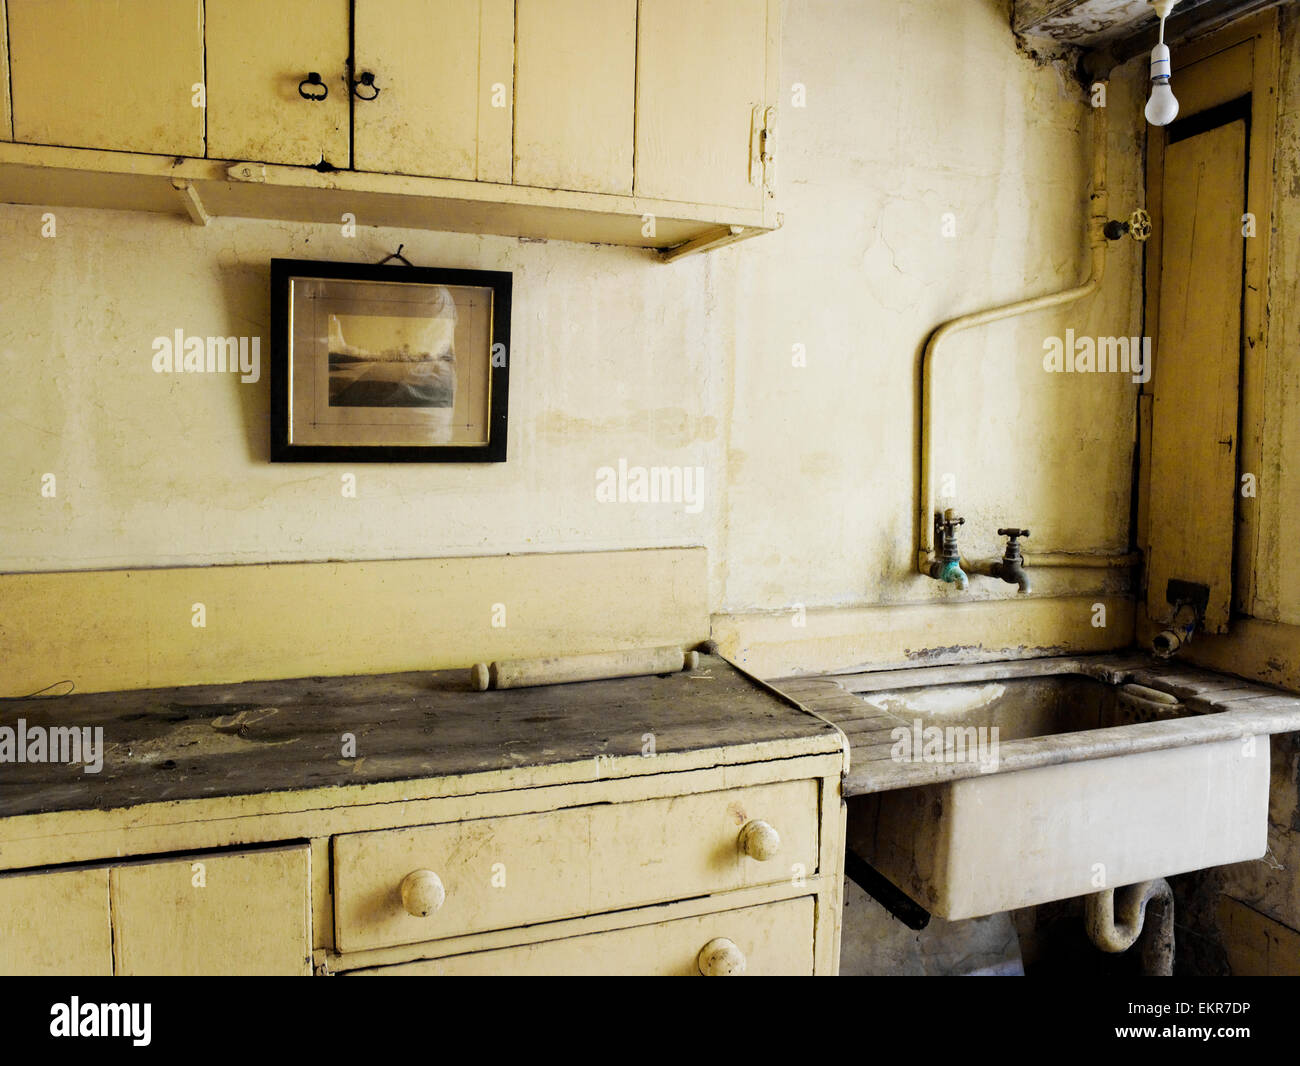 old fashioned sinks kitchen an fashioned kitchen sink and cupboards stock photo 3636